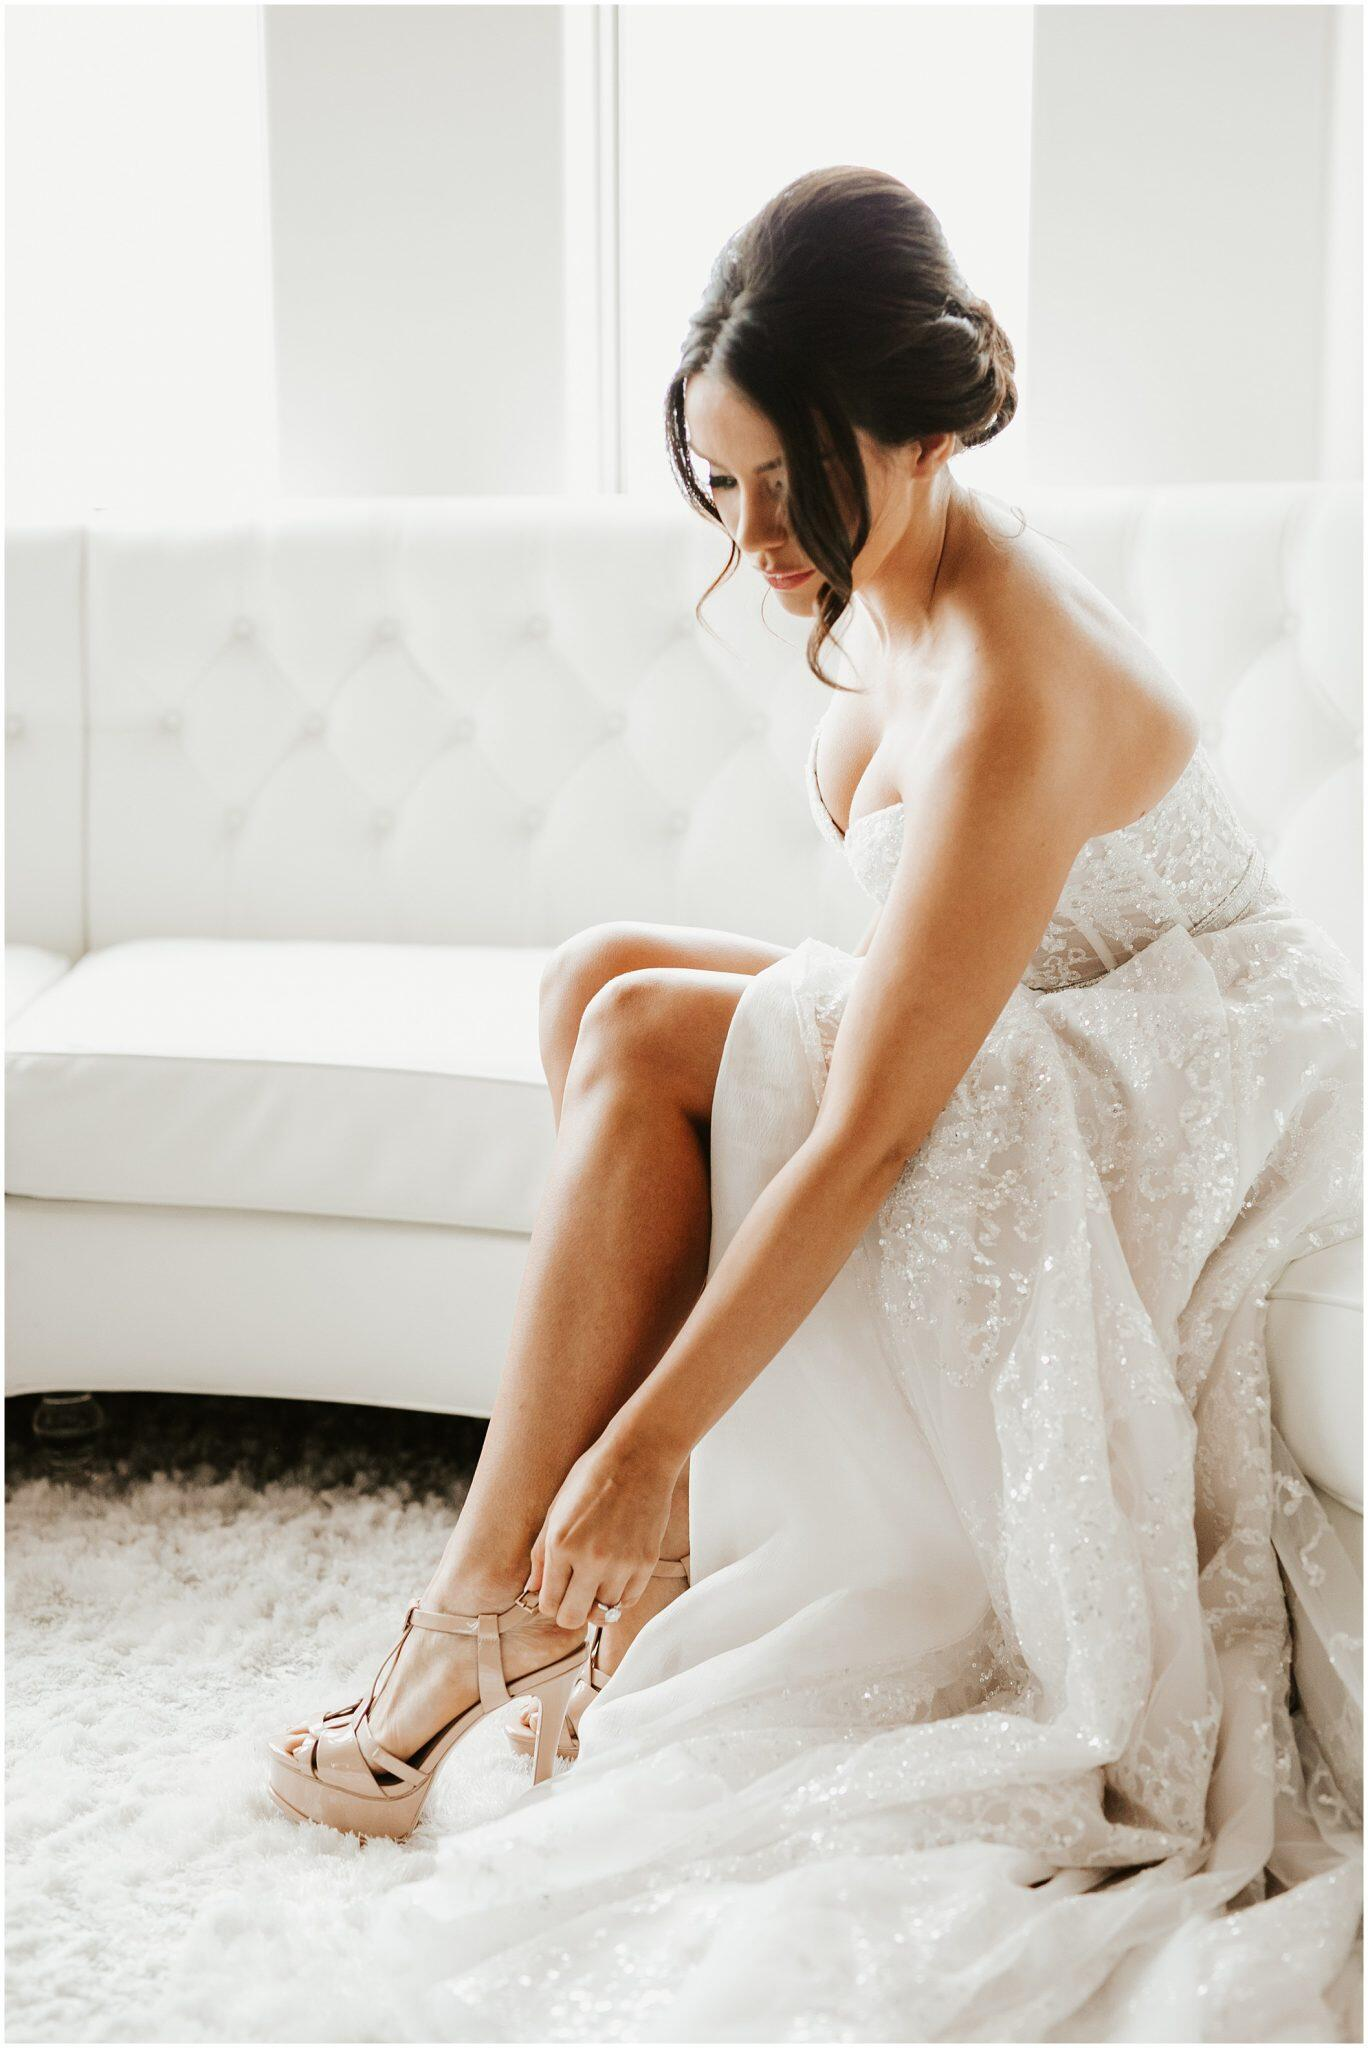 Portrait of a bride getting ready and wearing her shoe